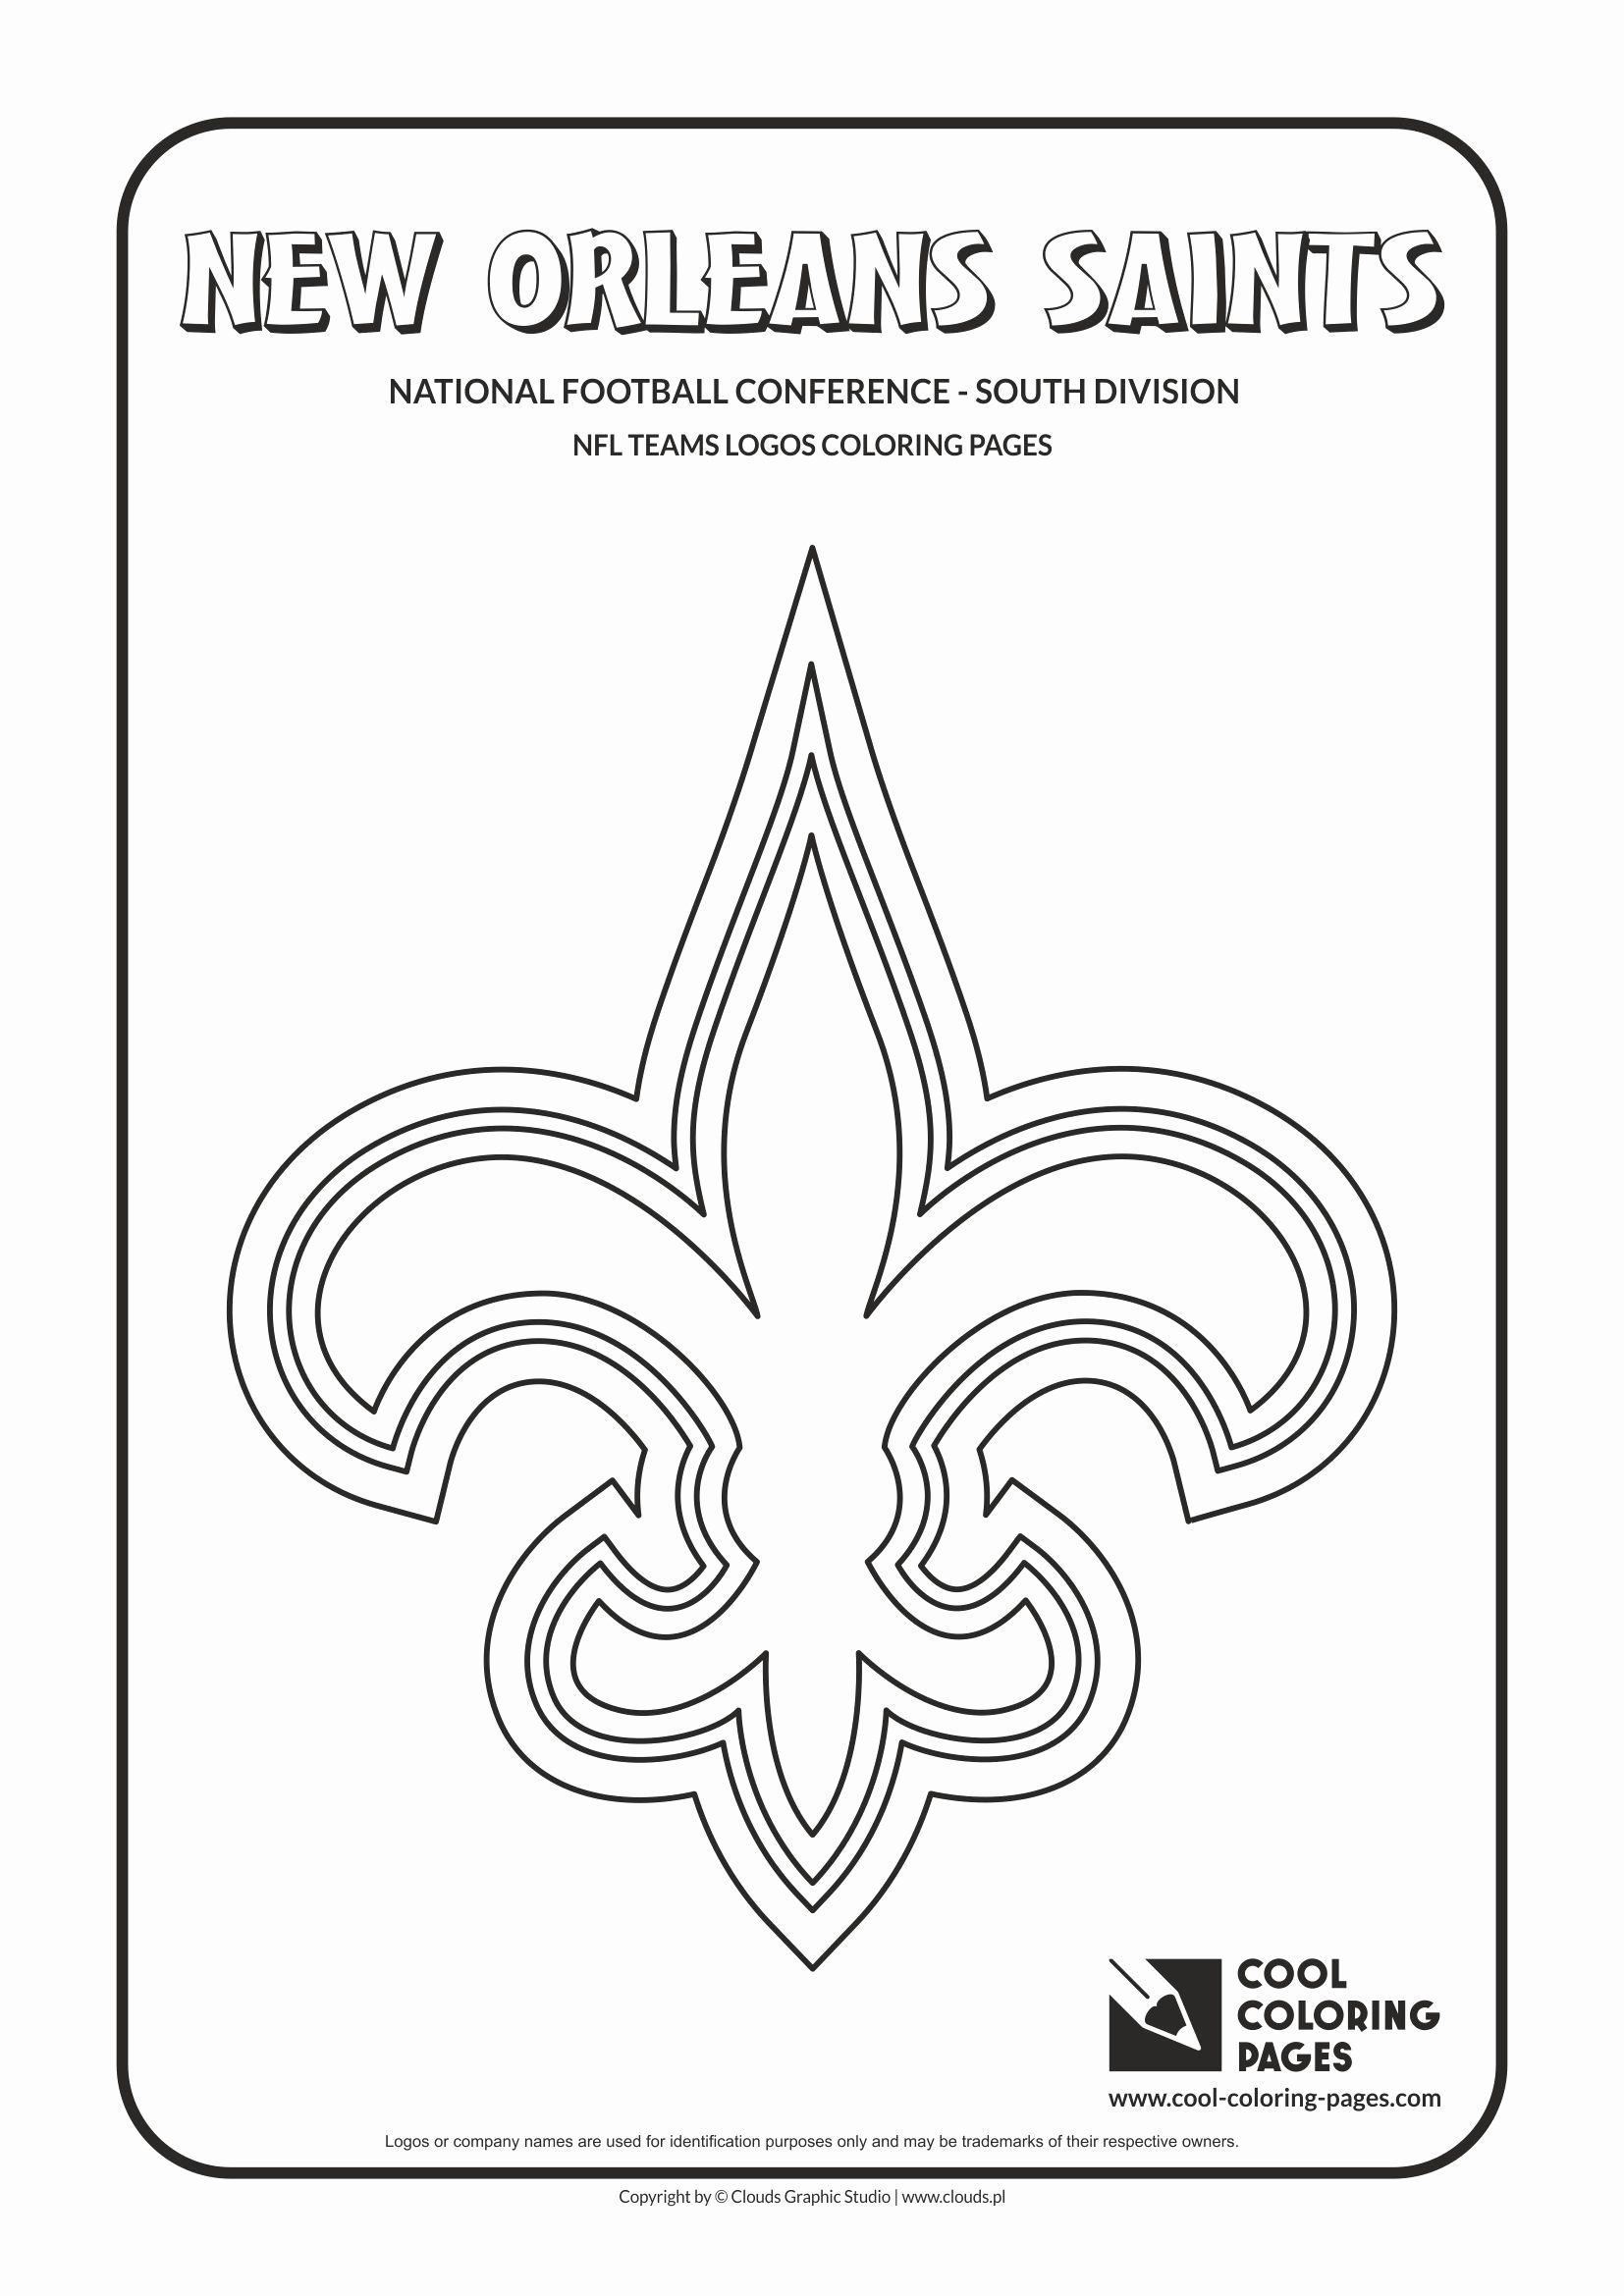 Nfl Logo Coloring Page Awesome Cool Coloring Pages Nfl American Football Clubs L Americ In 2020 Nfl Teams Logos Football Logo Nfl Logo